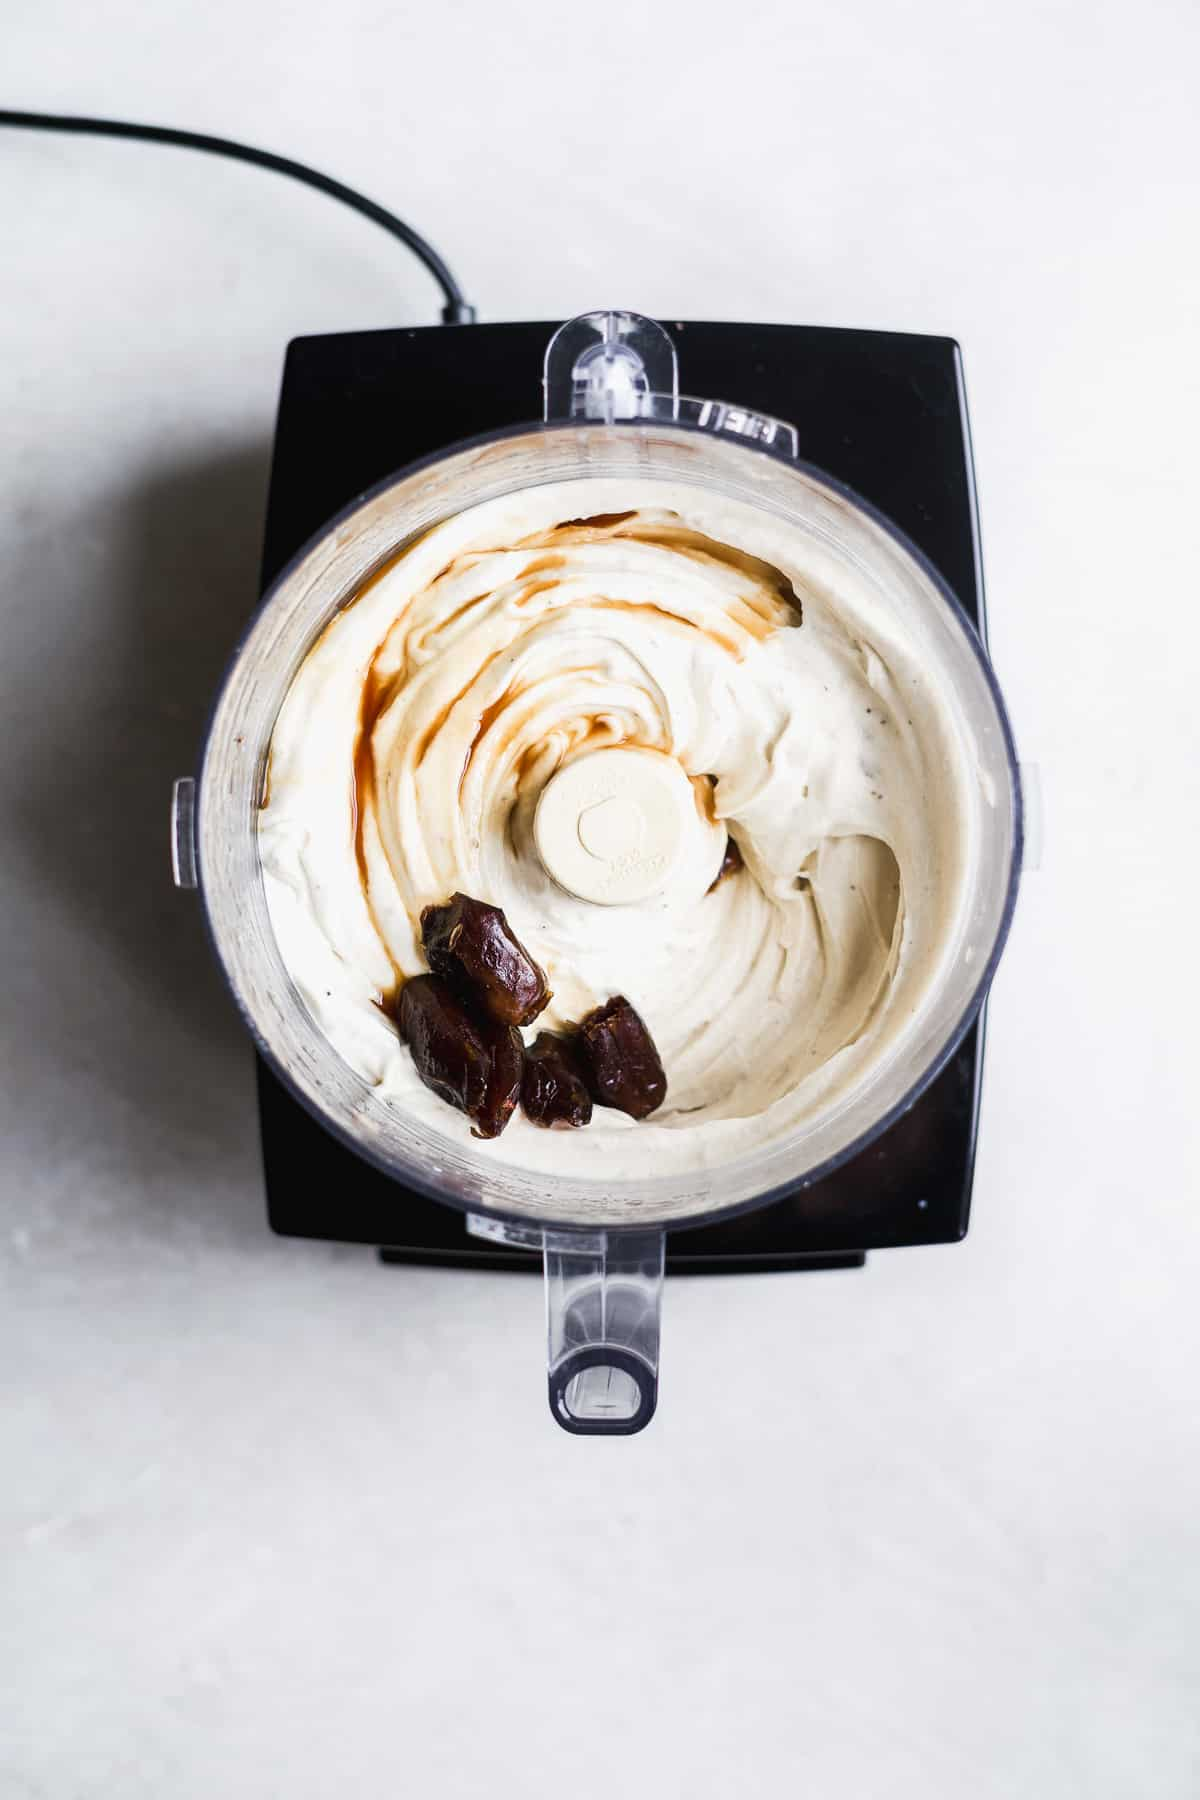 Banana ice cream blended in a food processor with dates about to be mixed in.